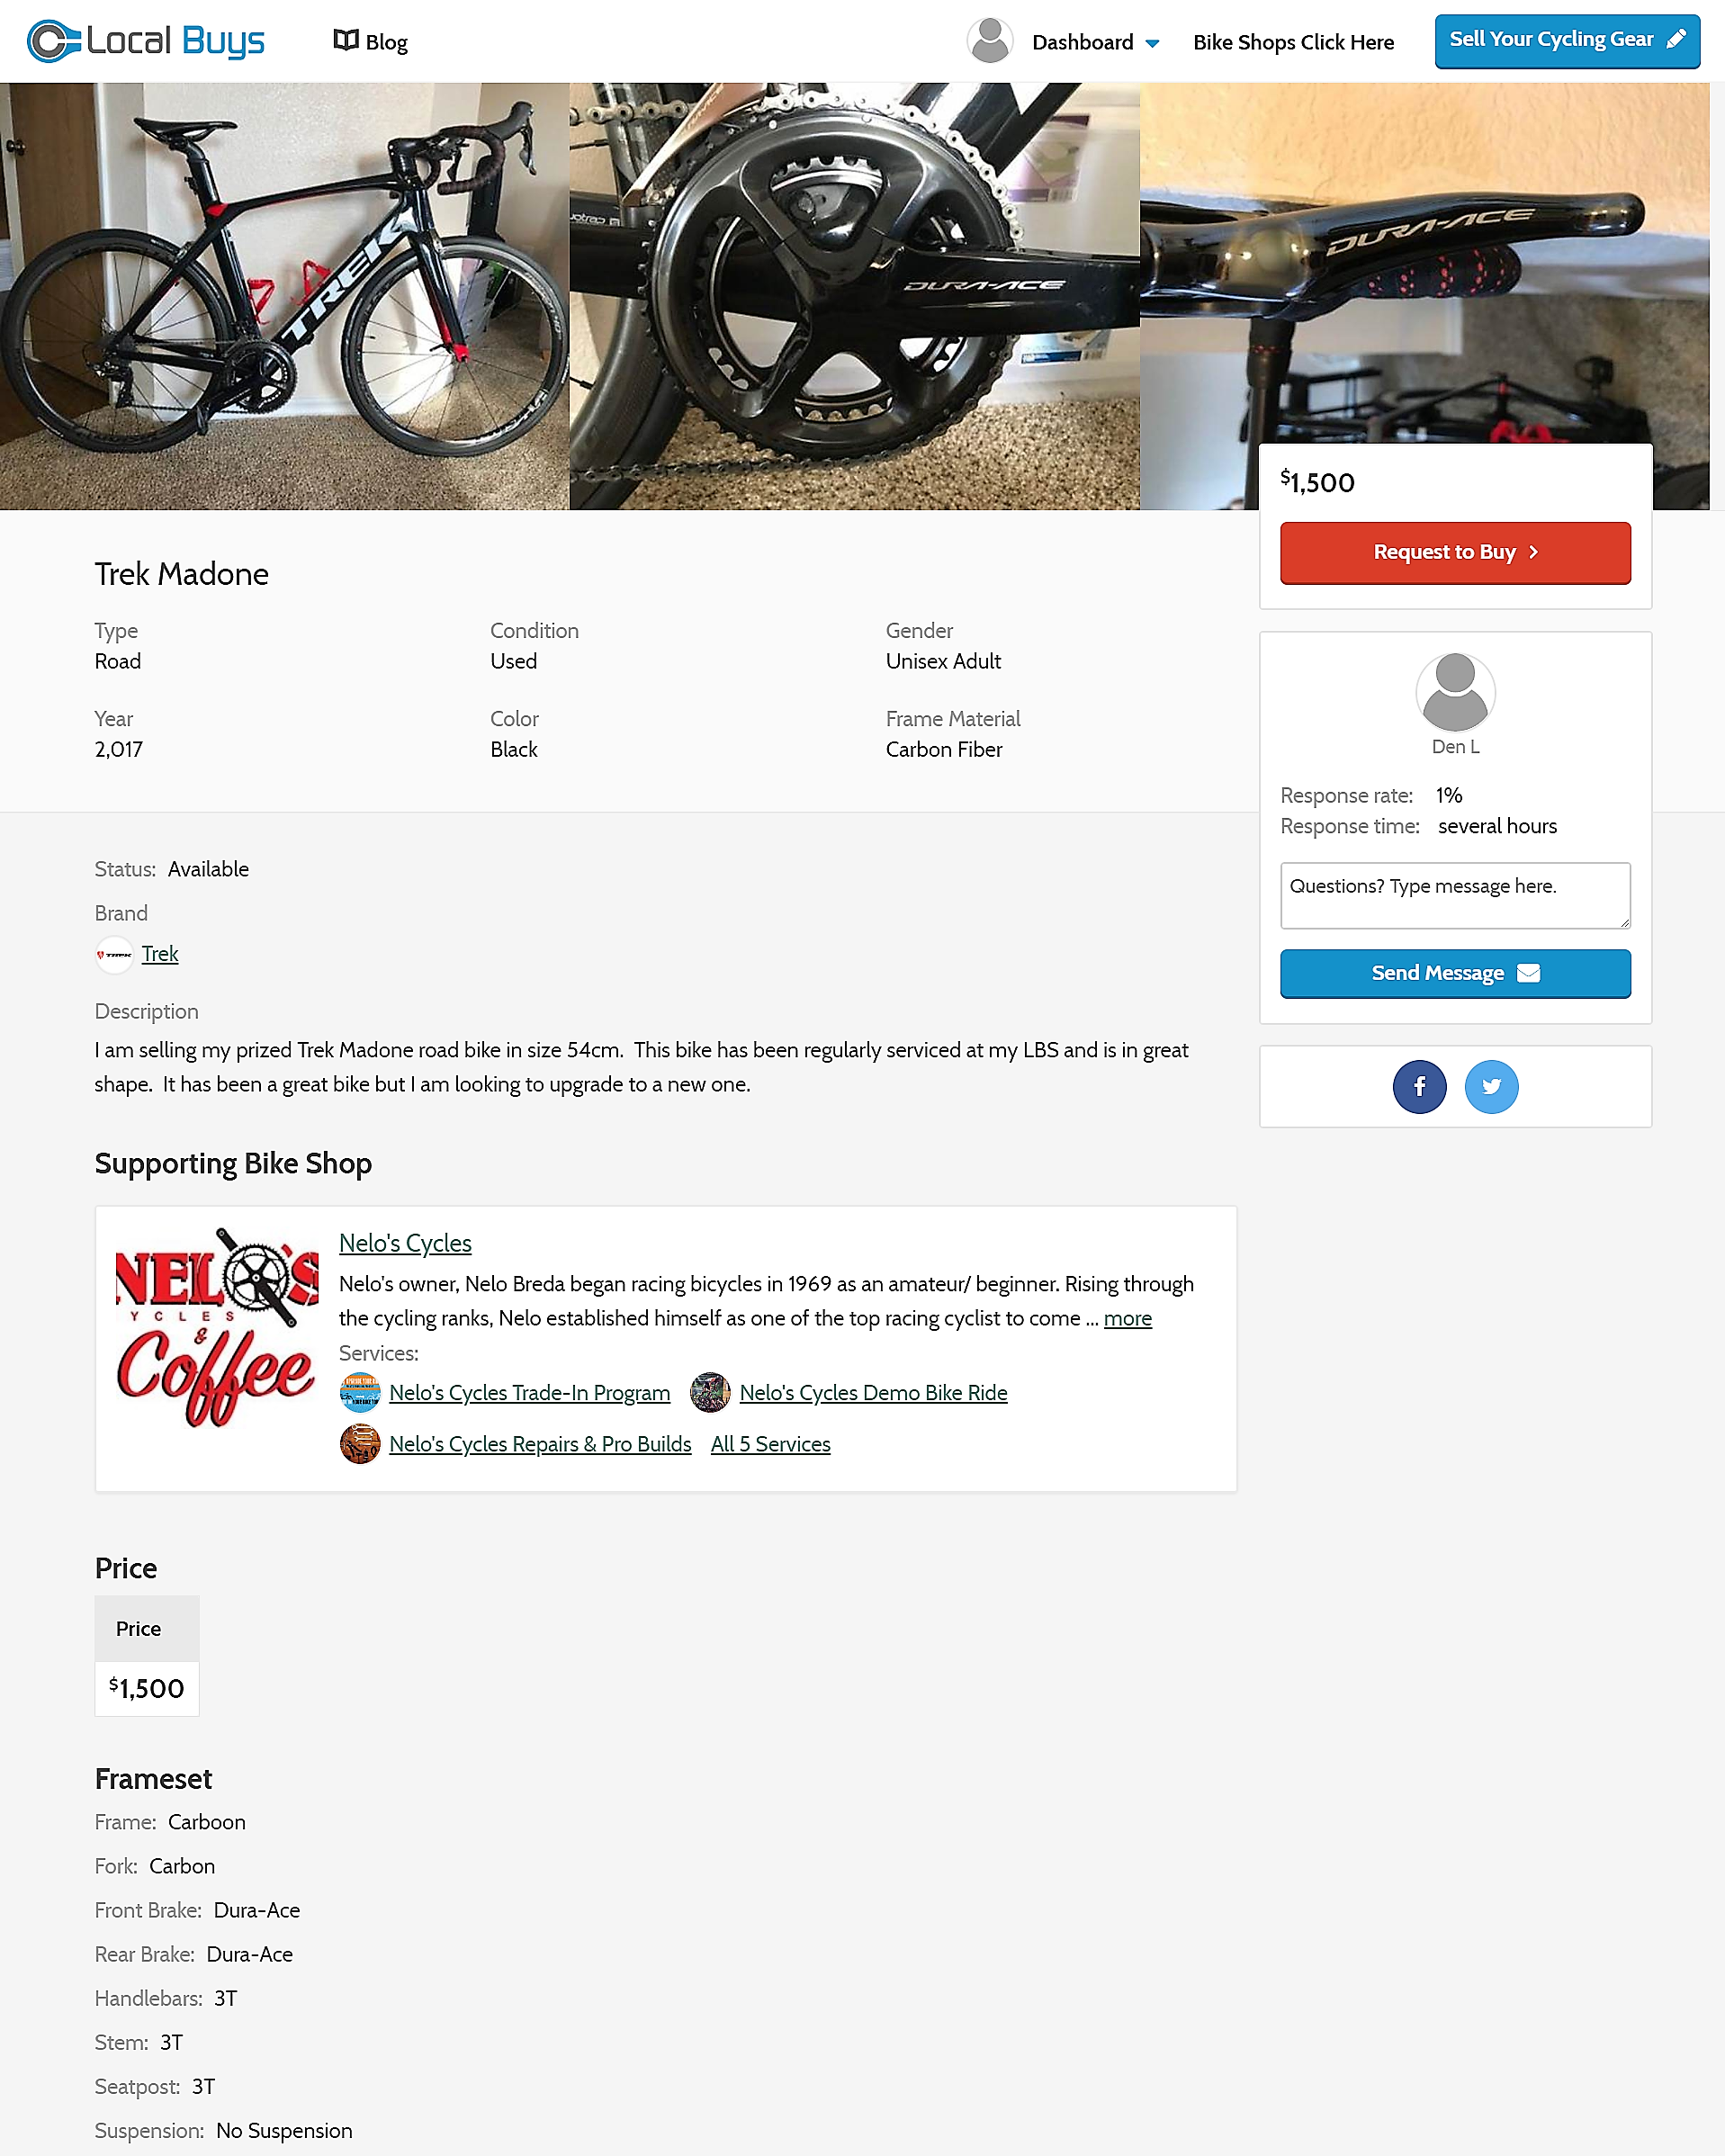 Product Page with Supporting Bicycle Shop